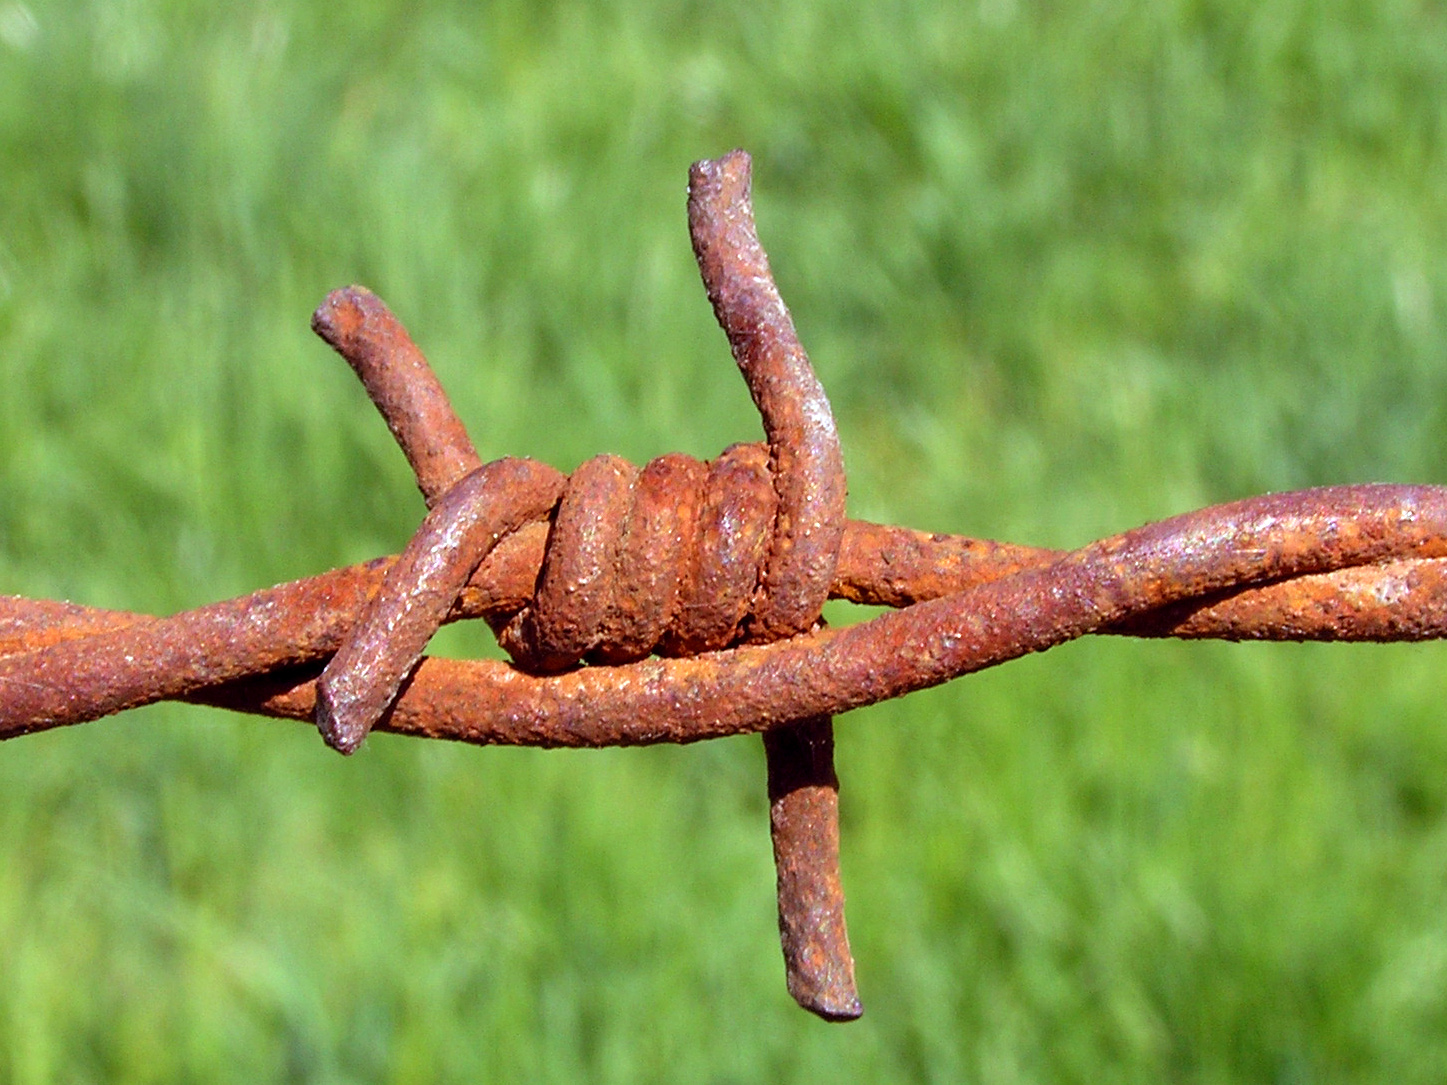 Figure 17.1-2. Rusted Barbed Wire